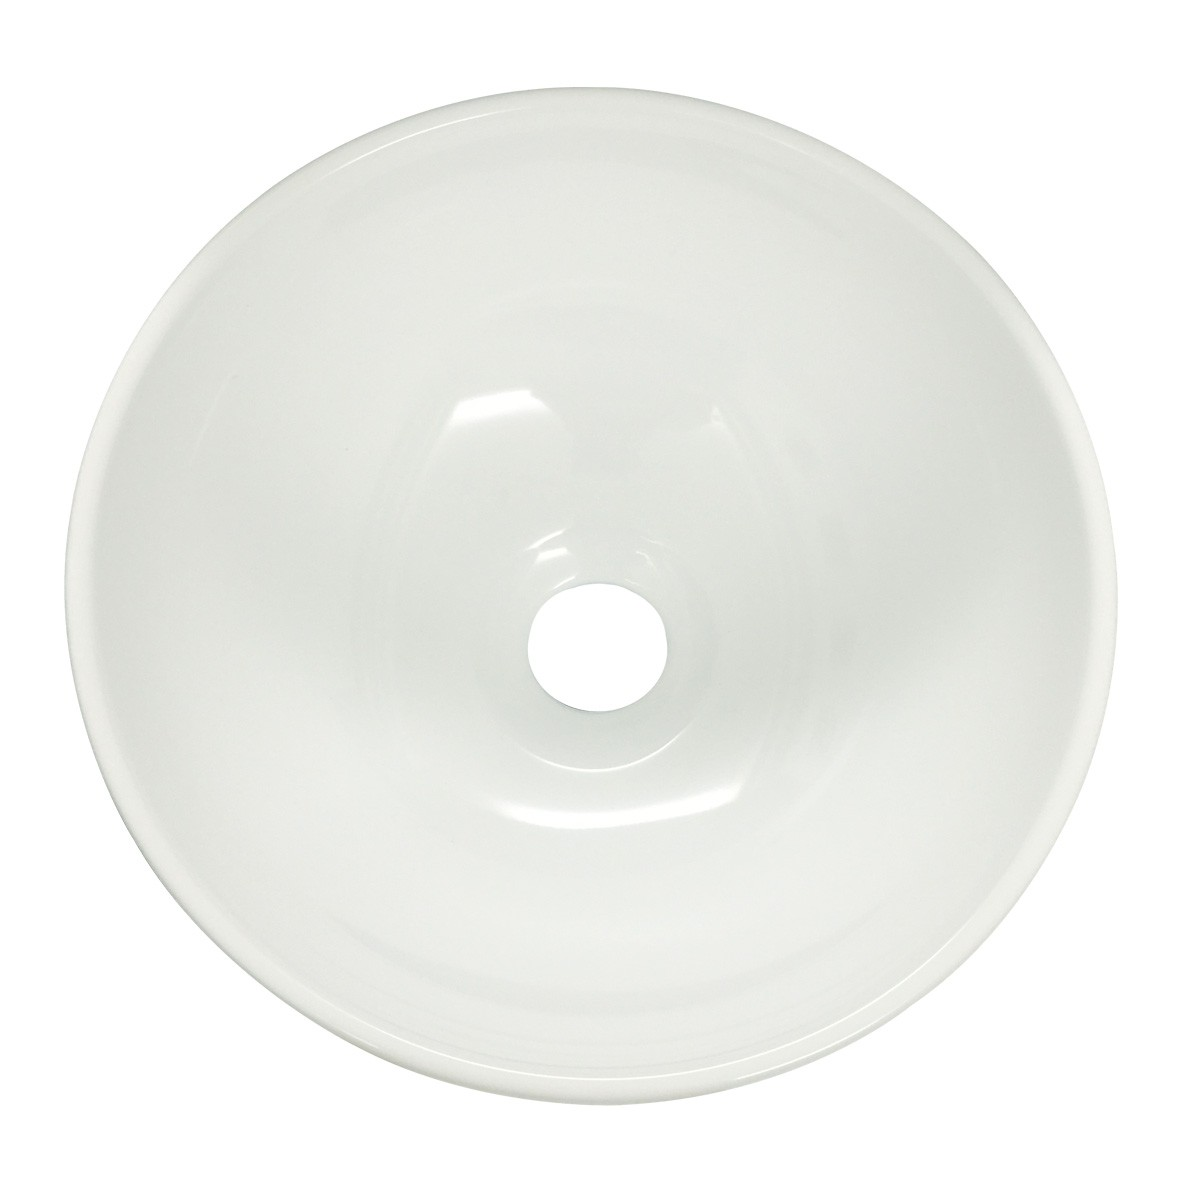 Renovators Supply Round Bathroom Countertop Vessel Sink in White bathroom vessel sinks Countertop vessel sink Compact Space Saving Small Counter Top Sink